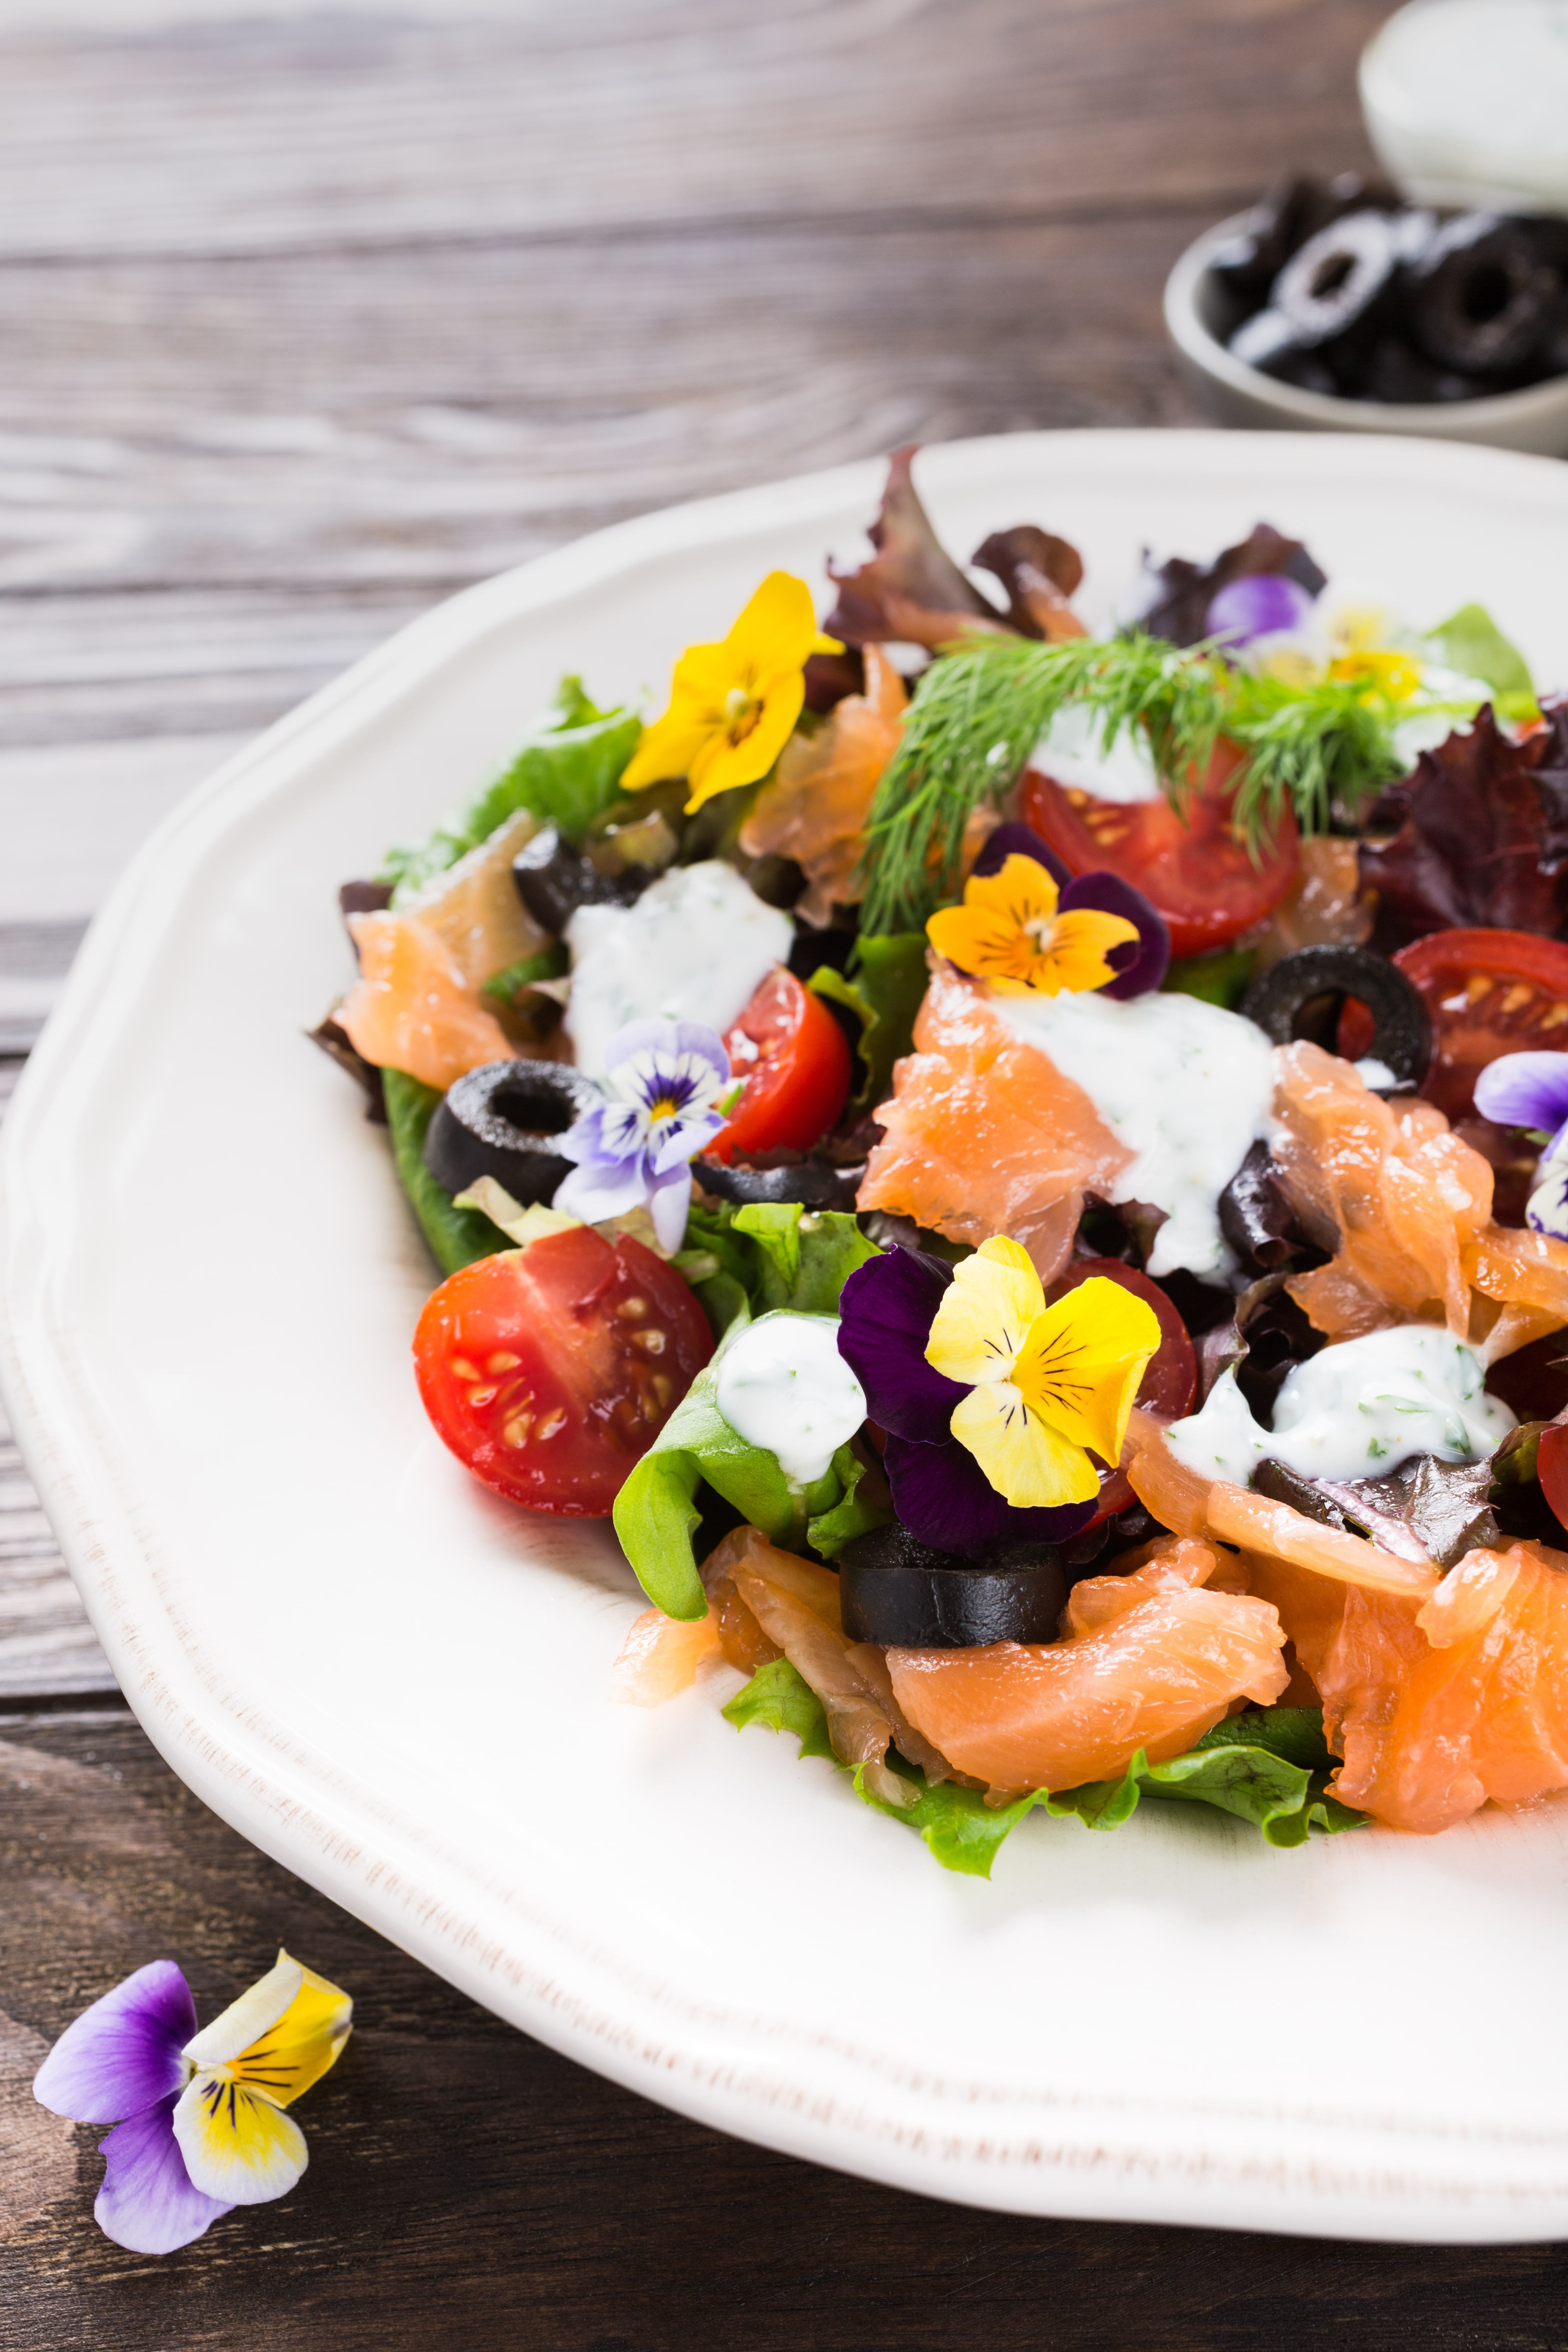 Salmon and Tomato Salad with Edible Flowers